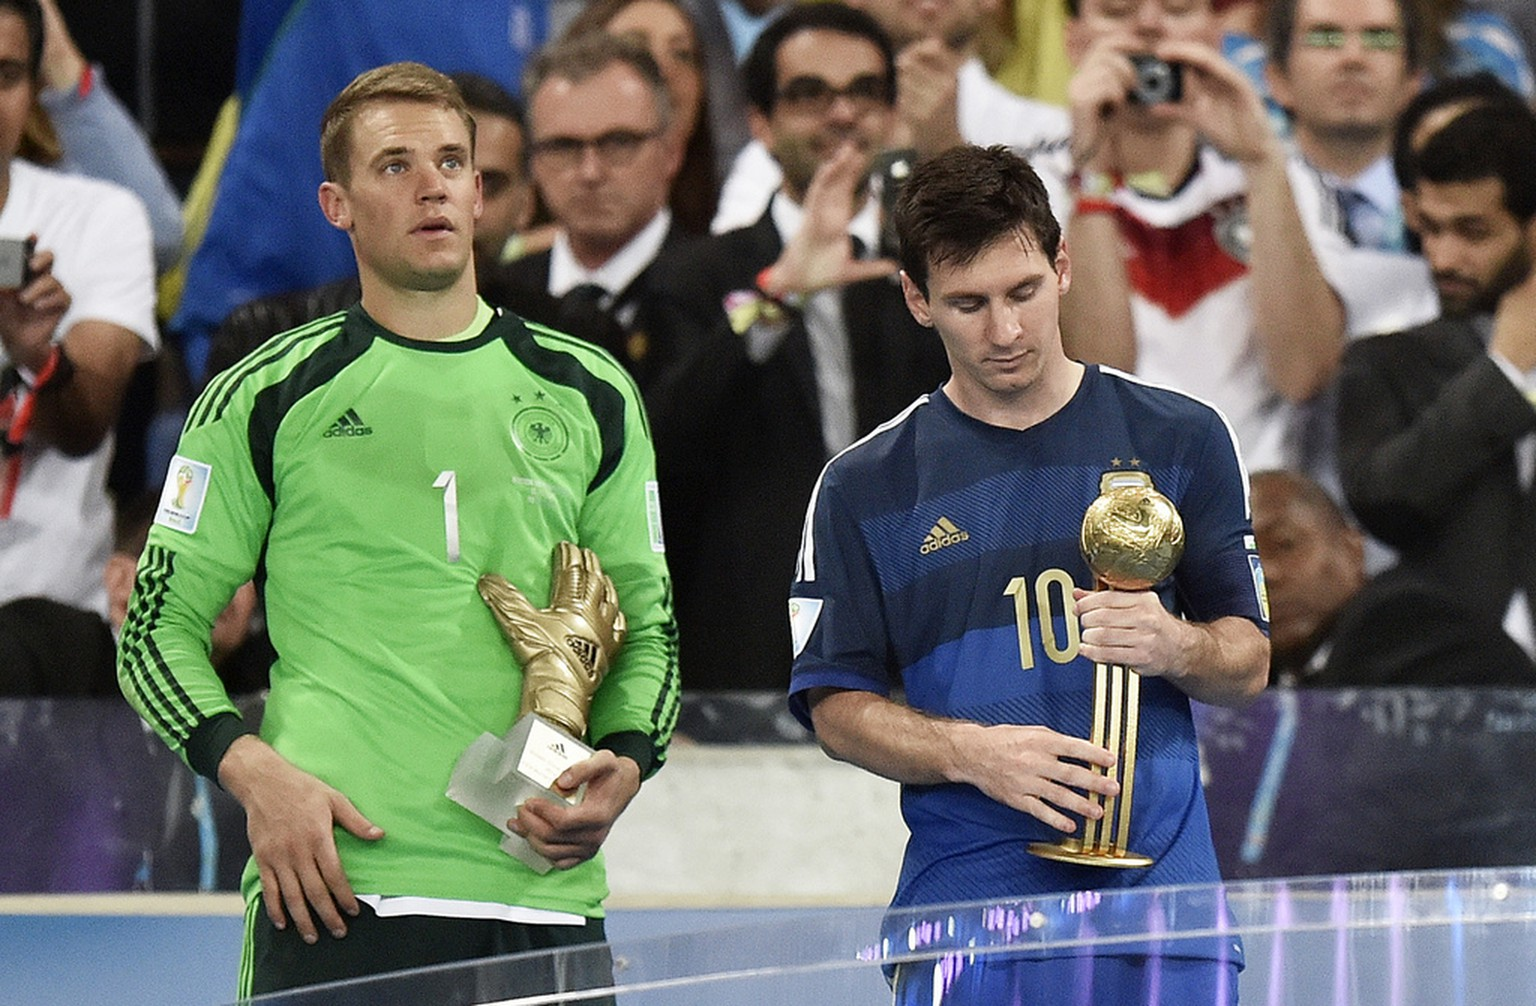 Germany's goalkeeper Manuel Neuer, left, winner of the Golden Glove award for best goalkeeper, stands with Argentina's Lionel Messi, right, winner of the Golden Ball award as the tournament's top player, after the World Cup final soccer match between Germany and Argentina at the Maracana Stadium in Rio de Janeiro, Brazil, Sunday, July 13, 2014. Germany won the match 1-0. (AP Photo/Martin Meissner)